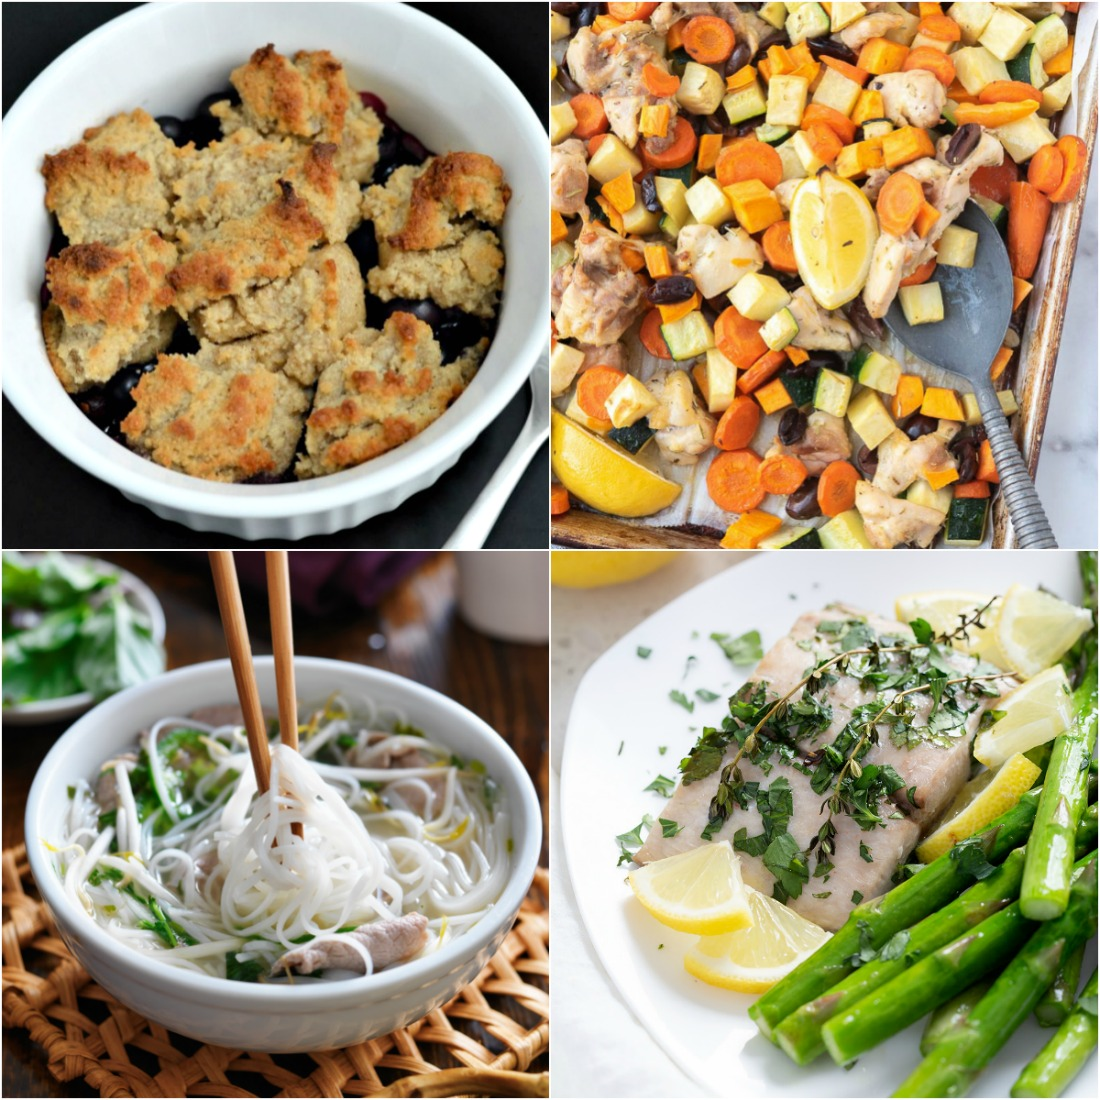 Paleo AIP Recipe Roundtable #321 | Phoenix Helix - *Featured Recipes: Blueberry Cobbler, Sheet Pan Mediterranean Chicken and Veggies, Lemon Baked Mahi Mahi, and an AIP Noodle and Pasta Recipe Roundup